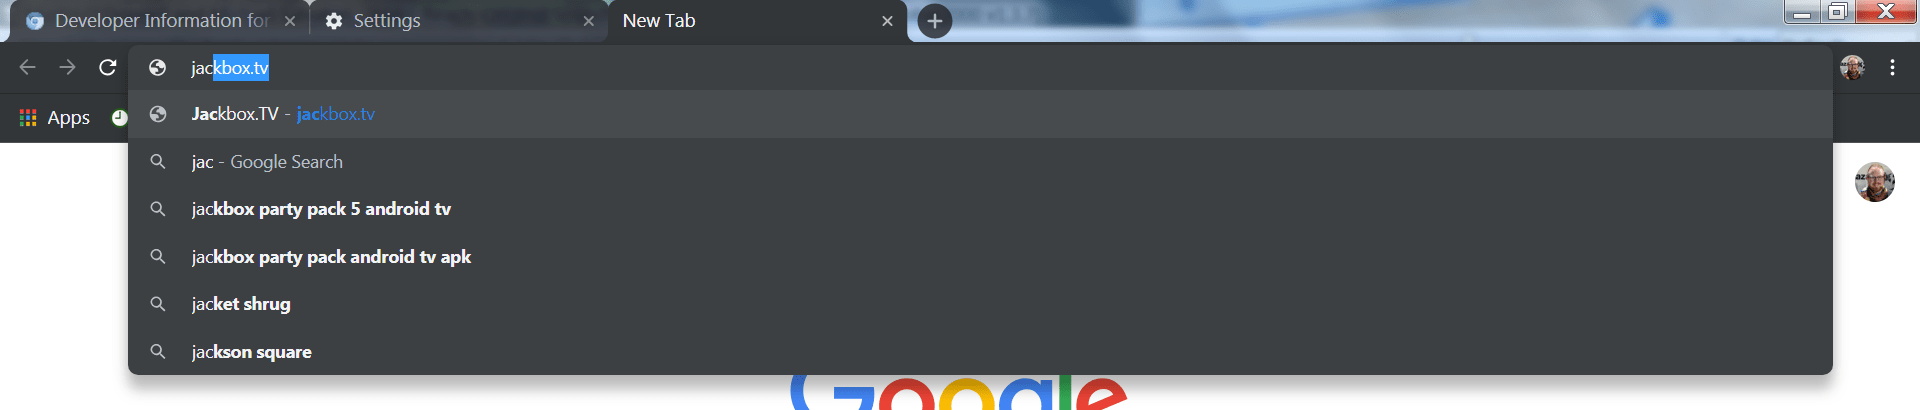 chrome windows dark mode